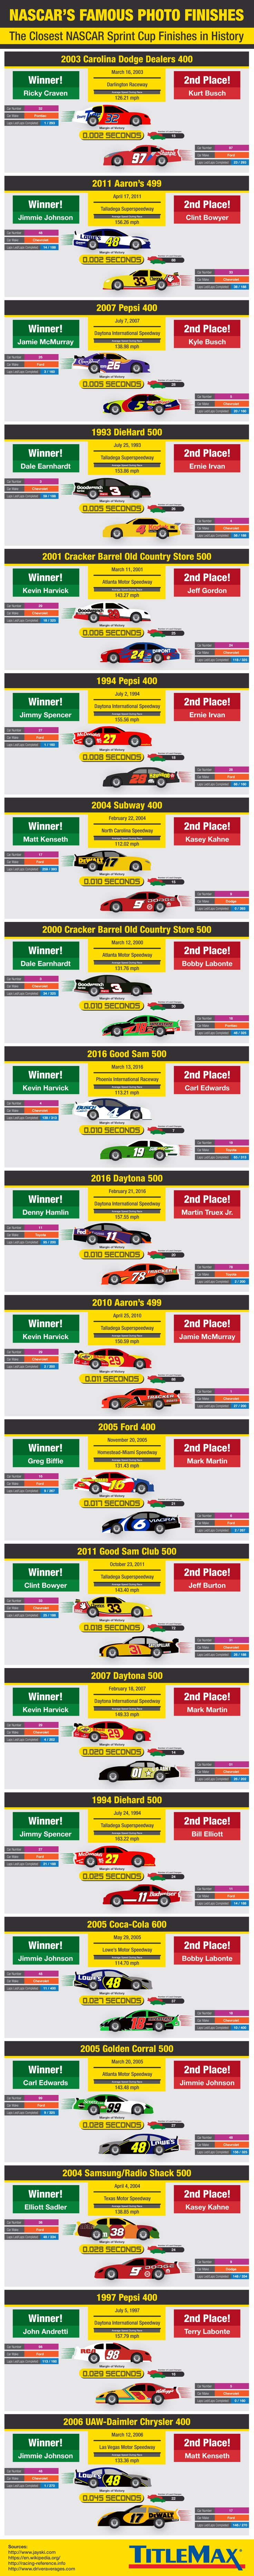 NASCAR's Famous Photo Finishes: The Closest NASCAR Sprint Cup Finishes in History #Infographic #Cars #Sports